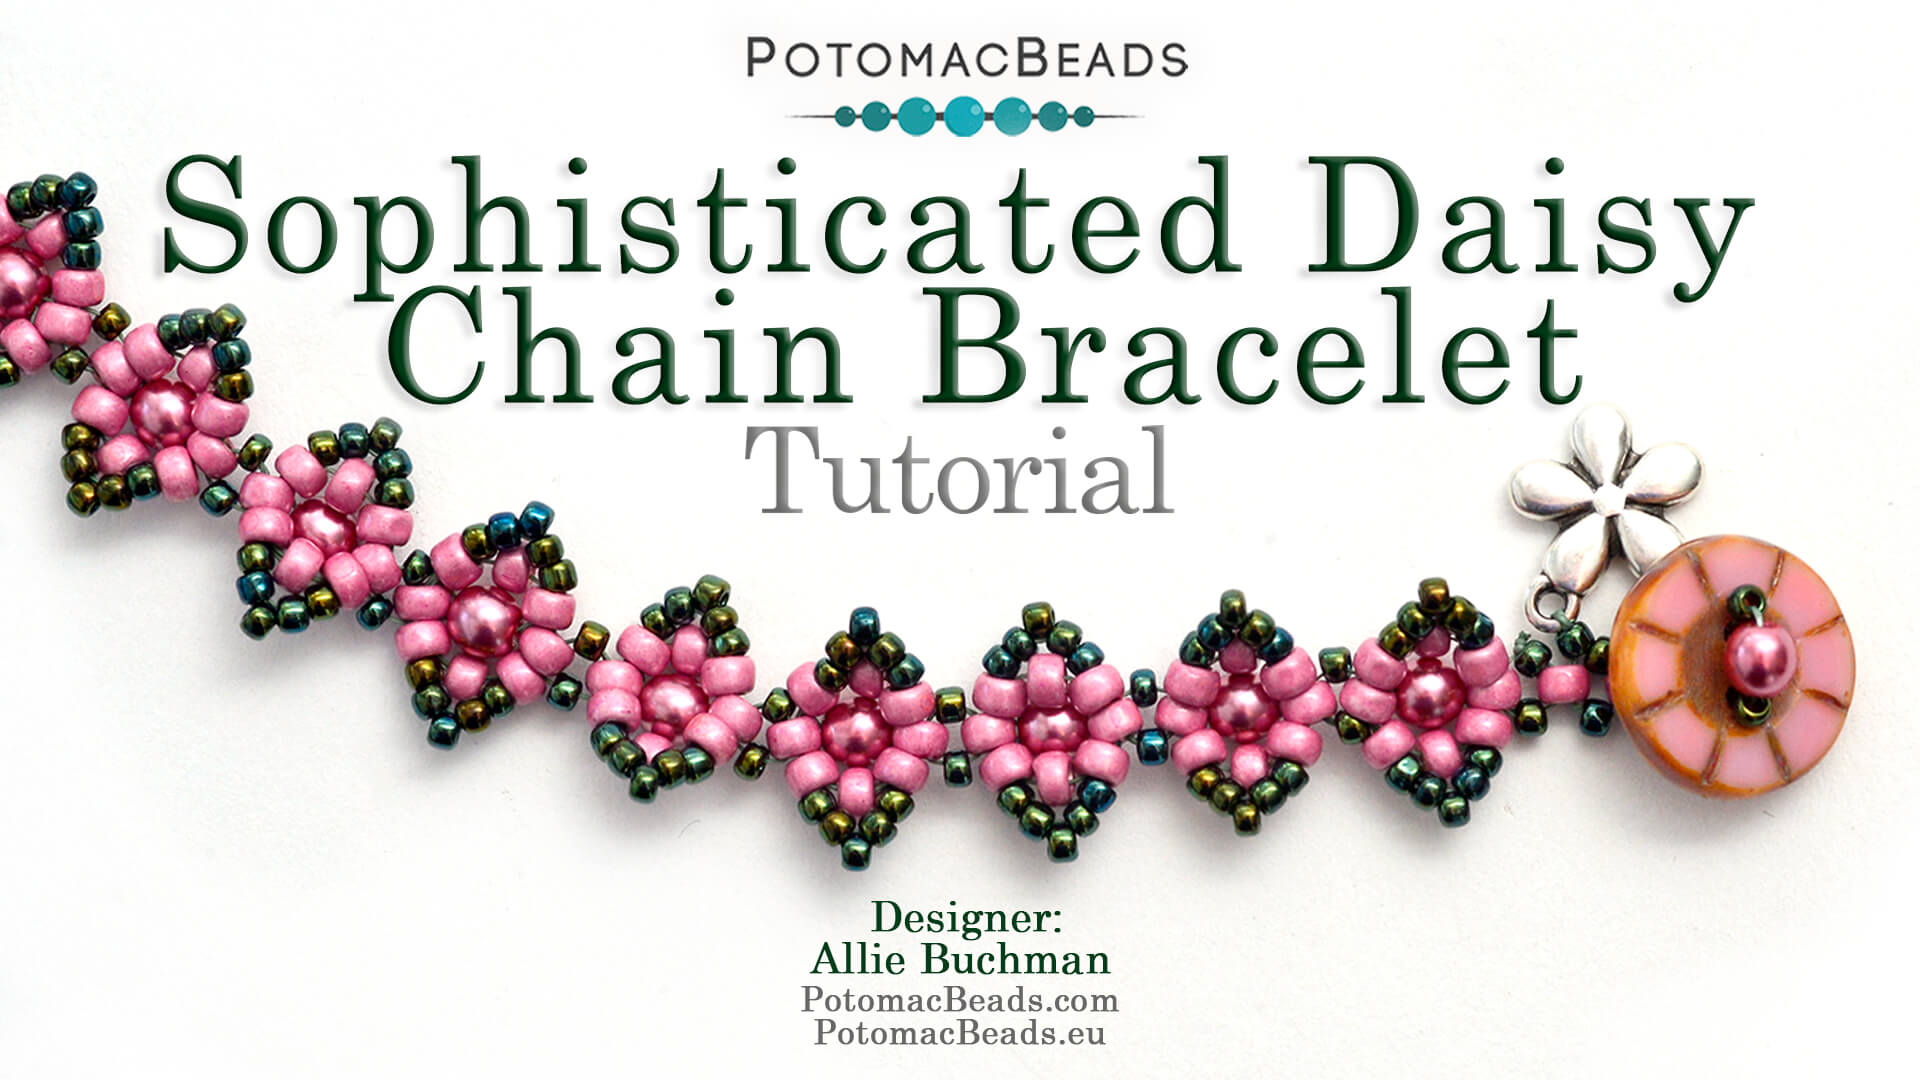 How to Bead / Videos Sorted by Beads / Pearl Videos (Czech & Freshwater) / Sophisticated Daisy Chain Bracelet Tutorial